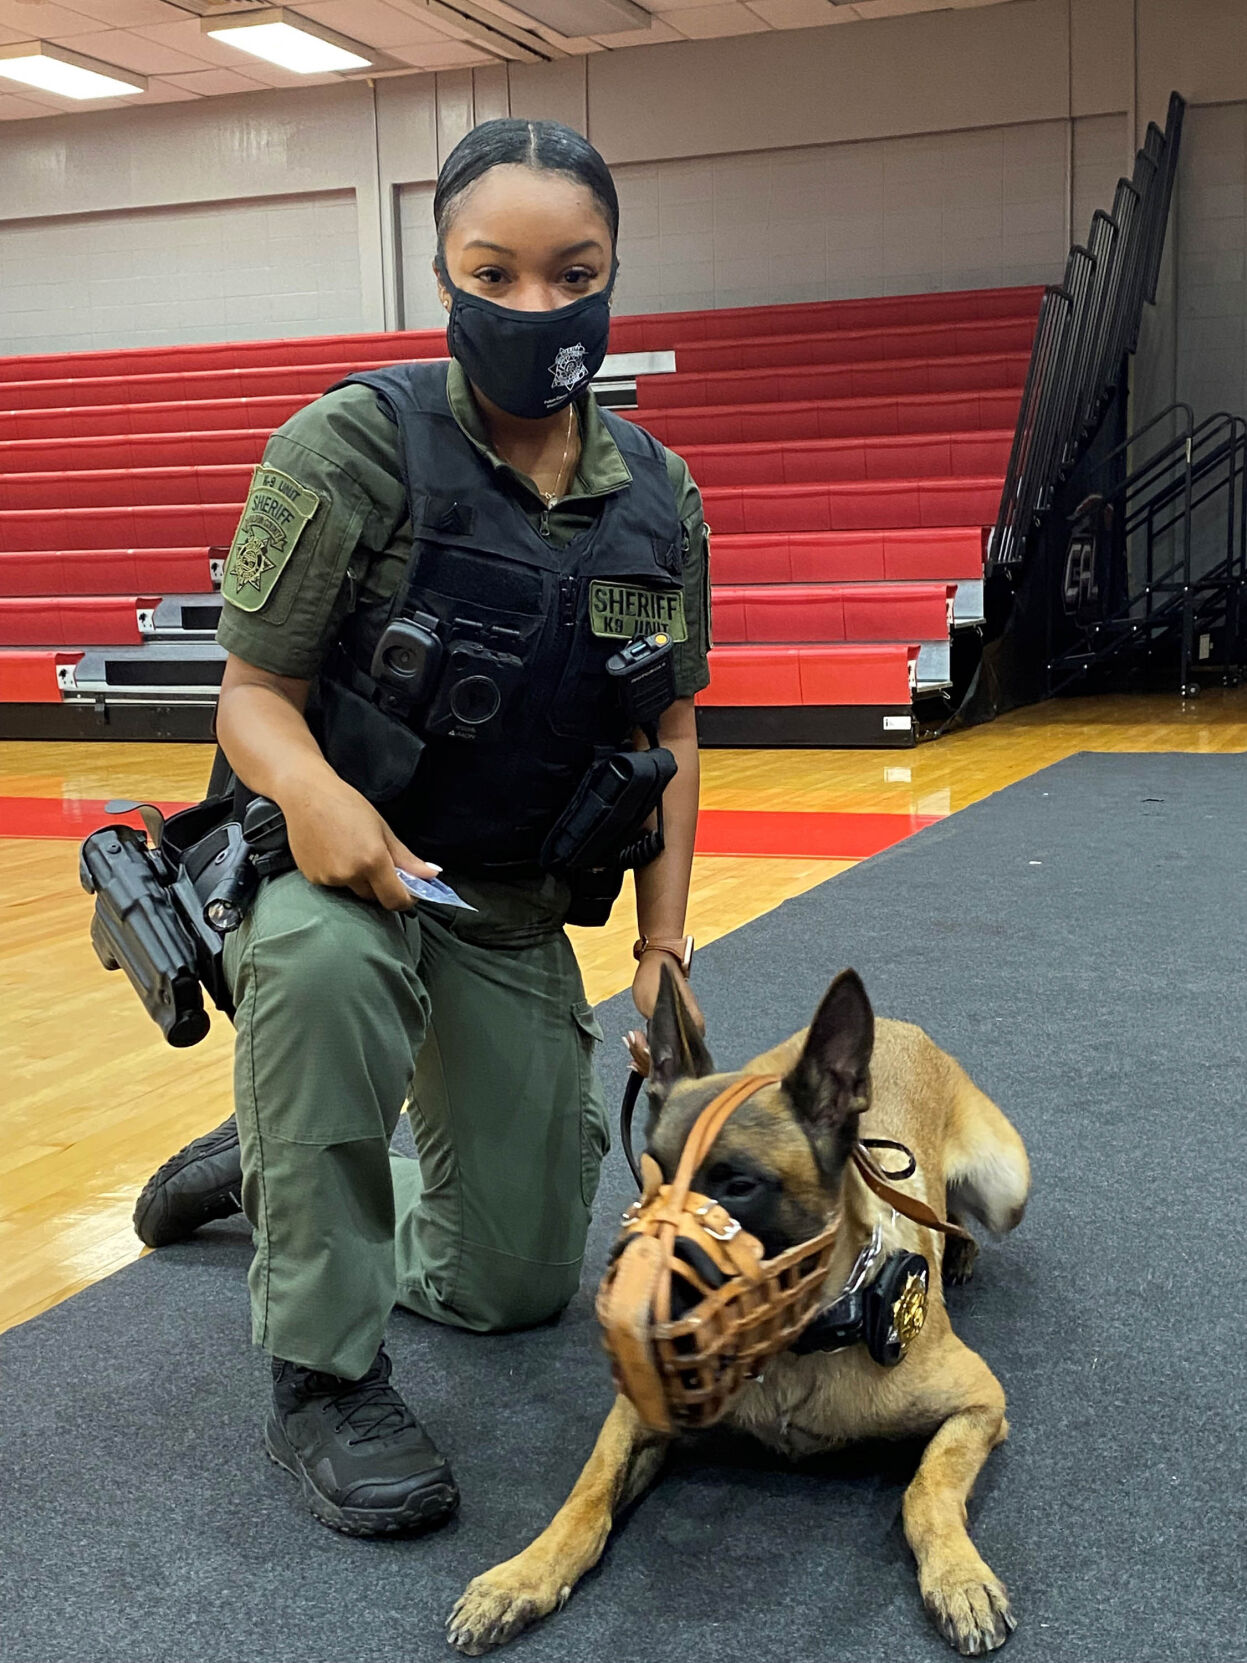 Sgt McEachin and Cosmo